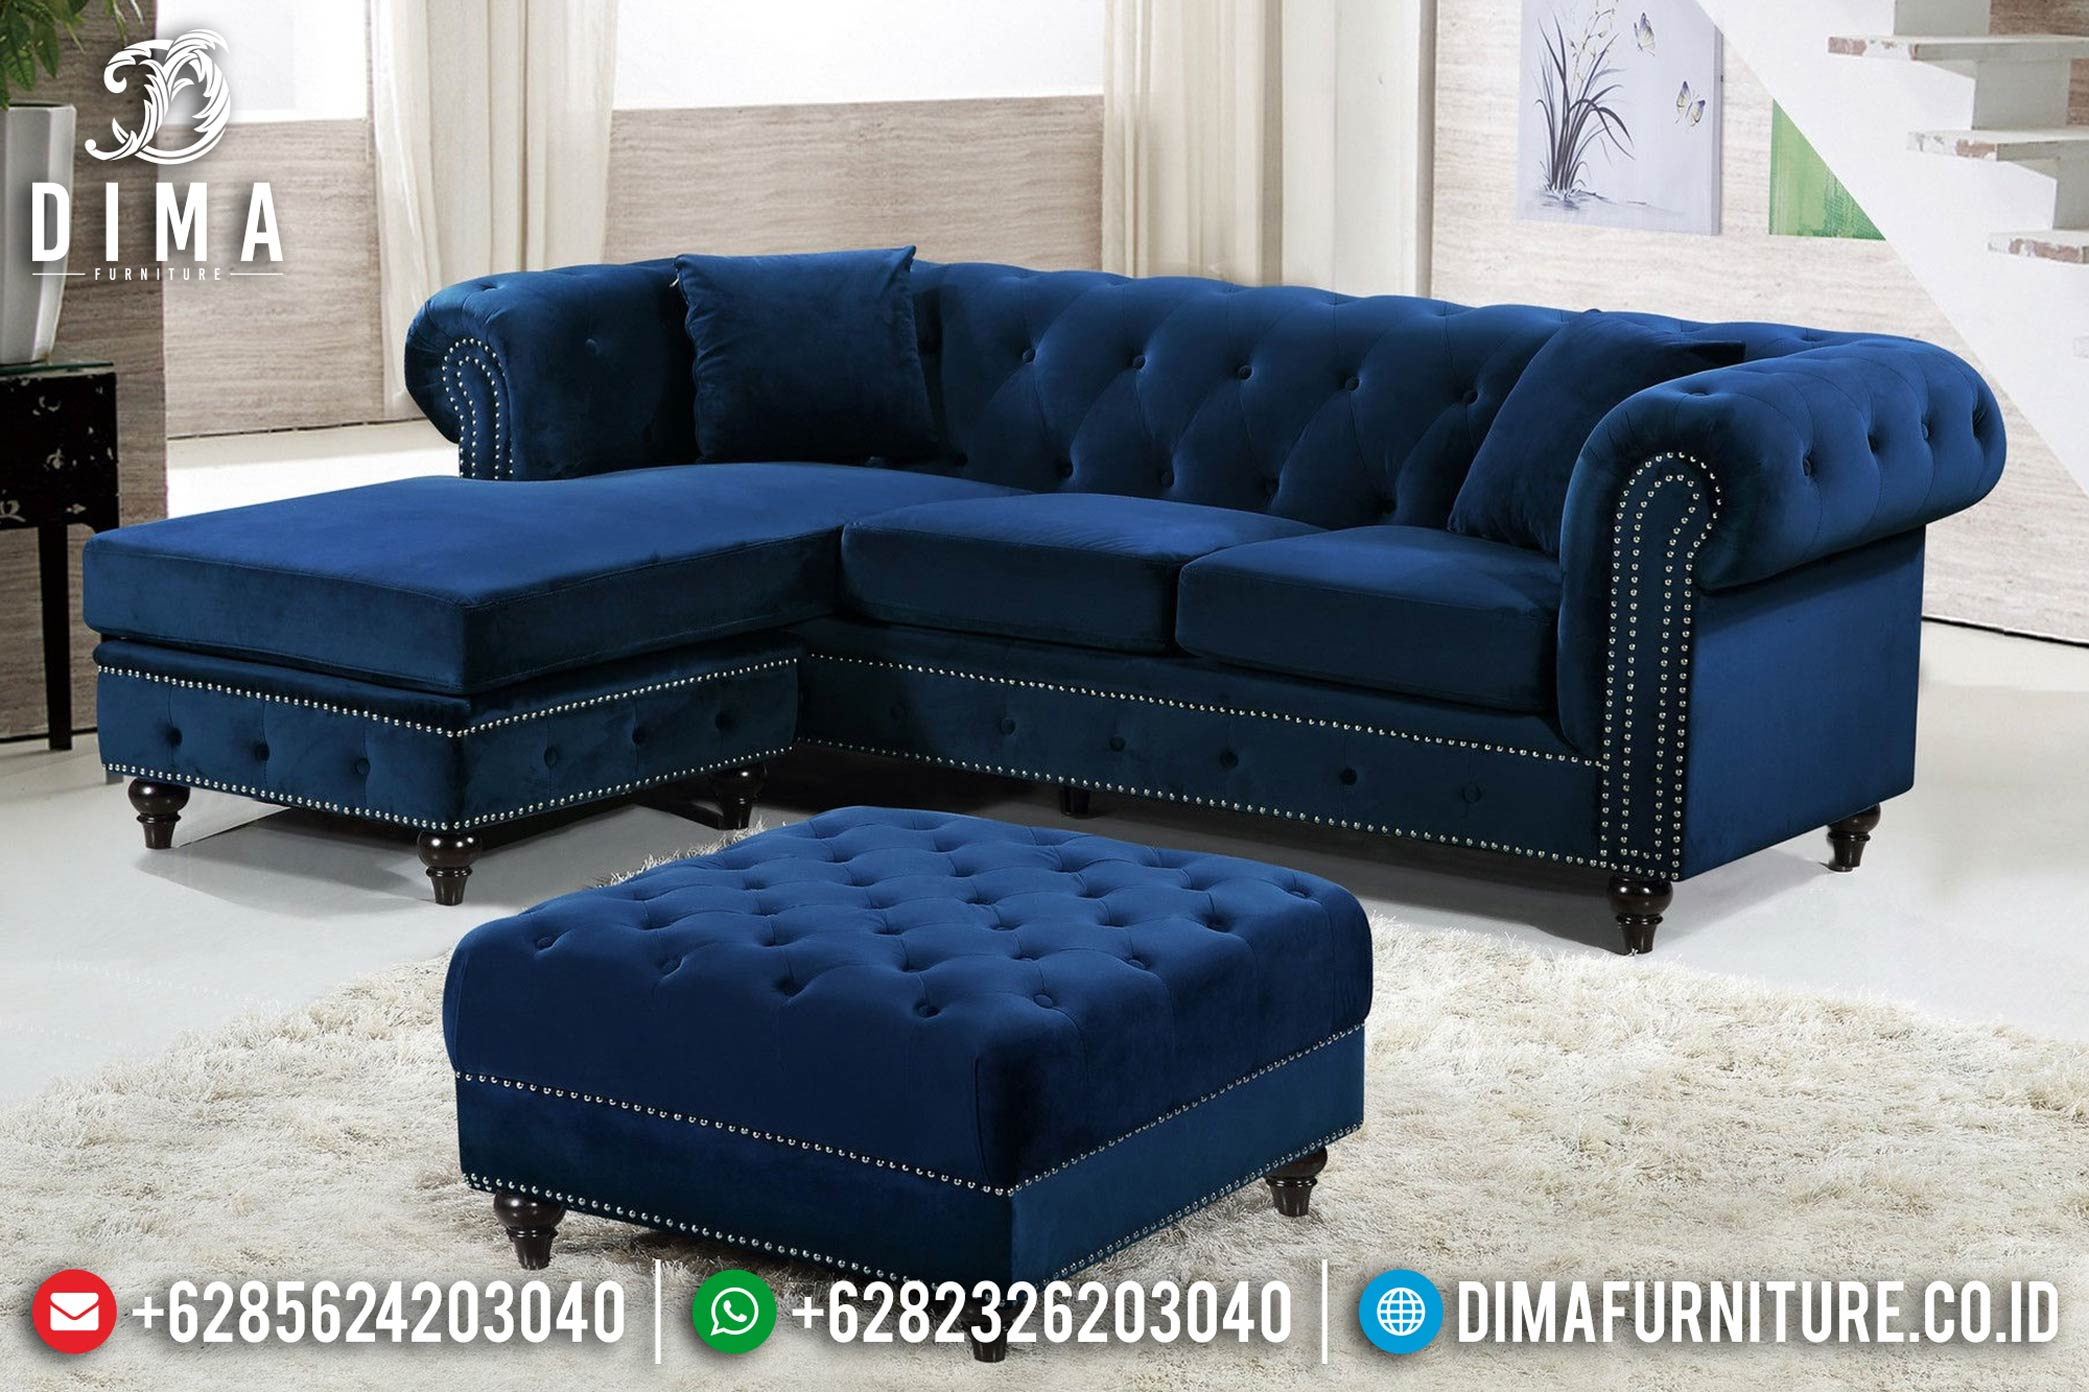 New Sale Sofa Tamu Minimalis Mewah Dima Furniture Jepara DF-1204